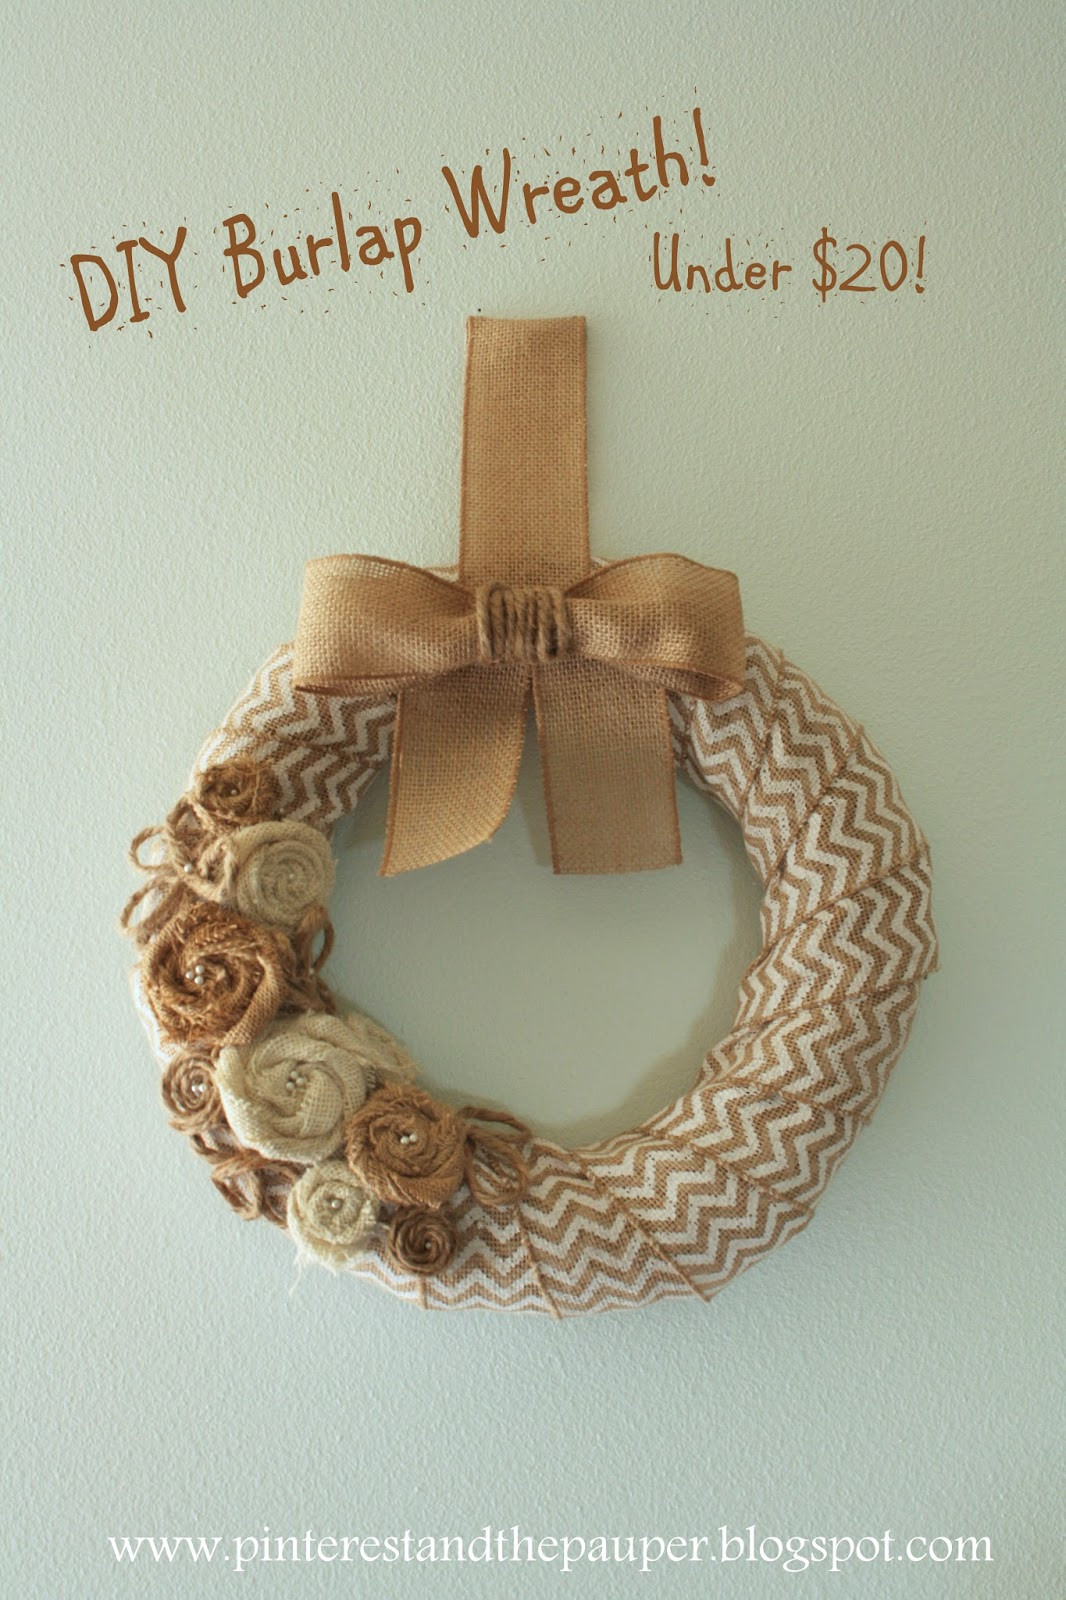 Best ideas about Burlap Wreath DIY . Save or Pin Pinterest and the Pauper DIY Burlap Wreath For Under $20 Now.